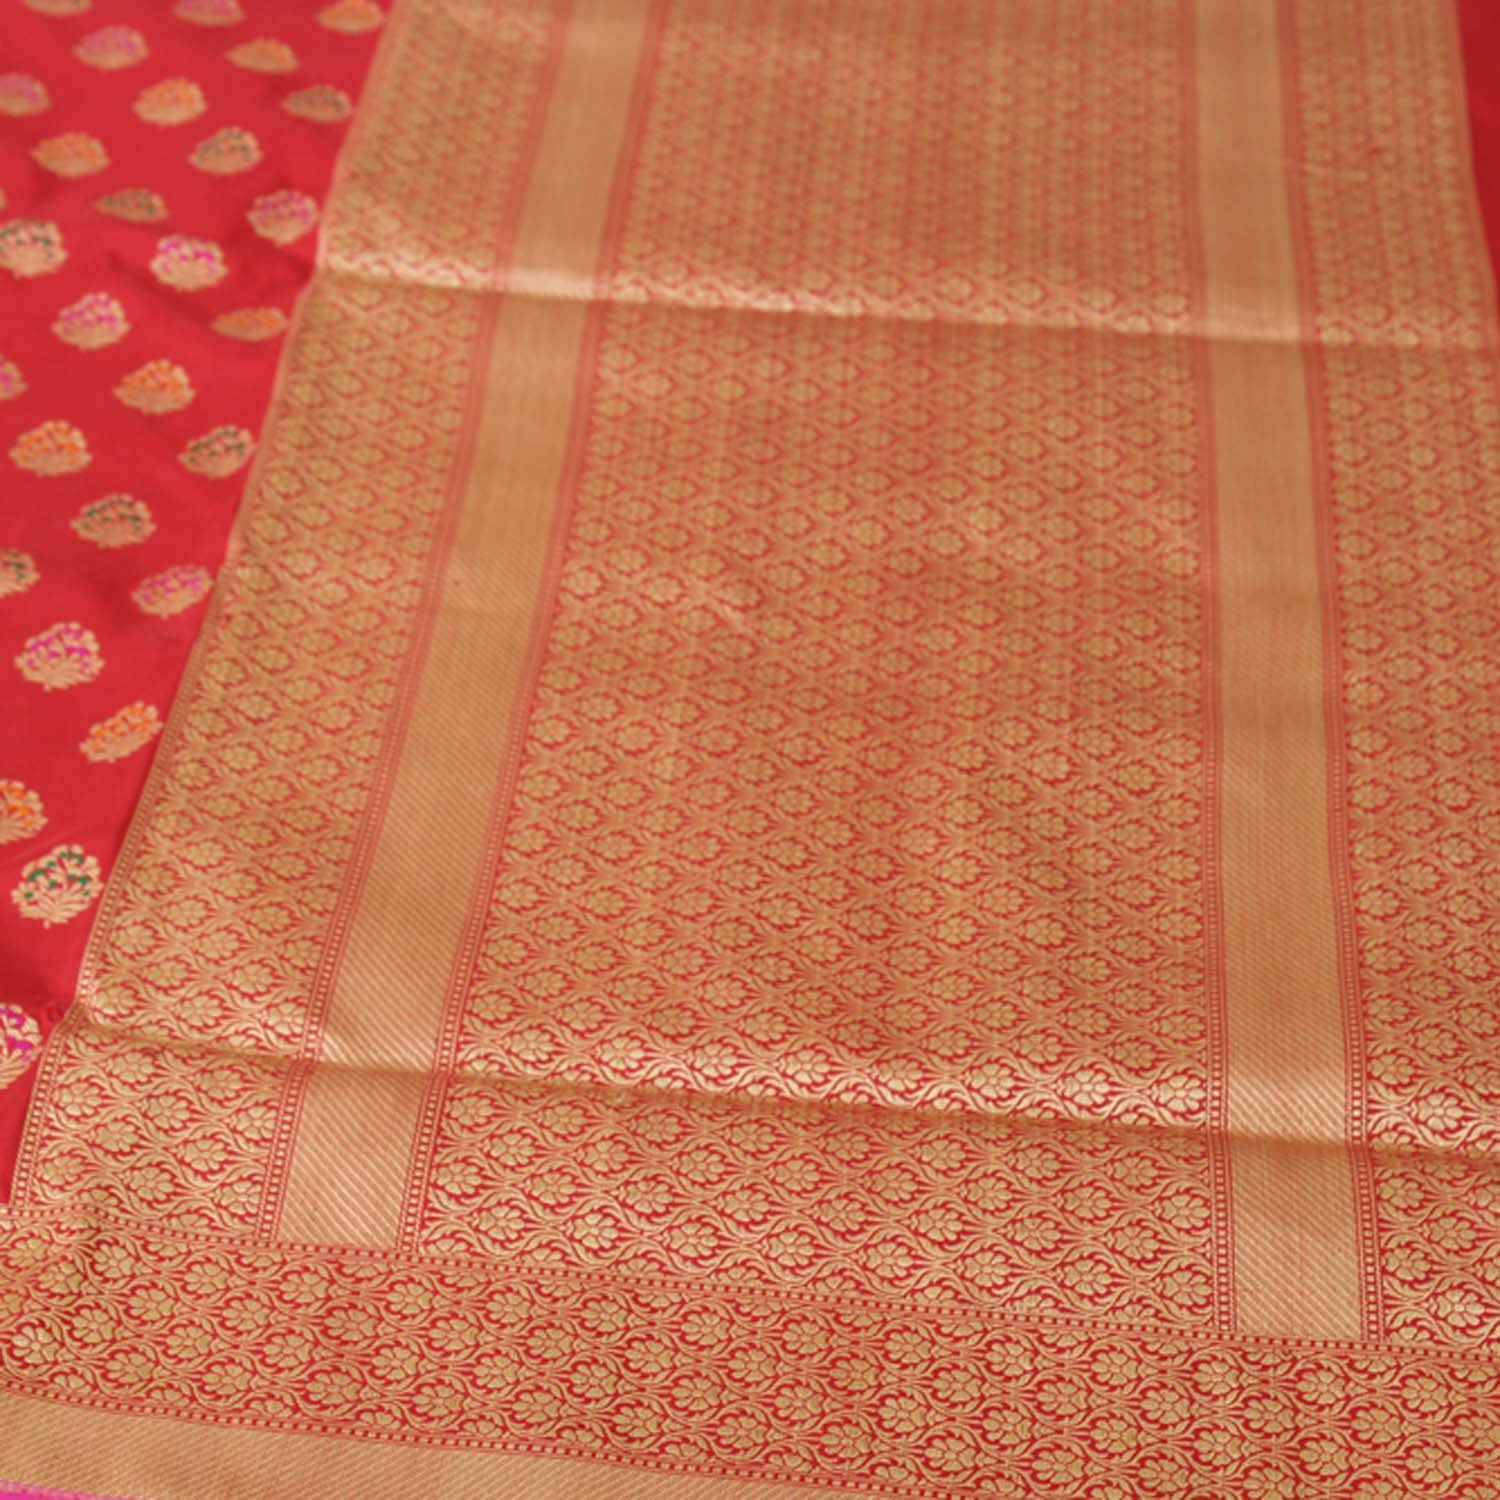 Red Pure Katan Silk Kadwa Banarasi Handloom Saree - Tilfi - 2